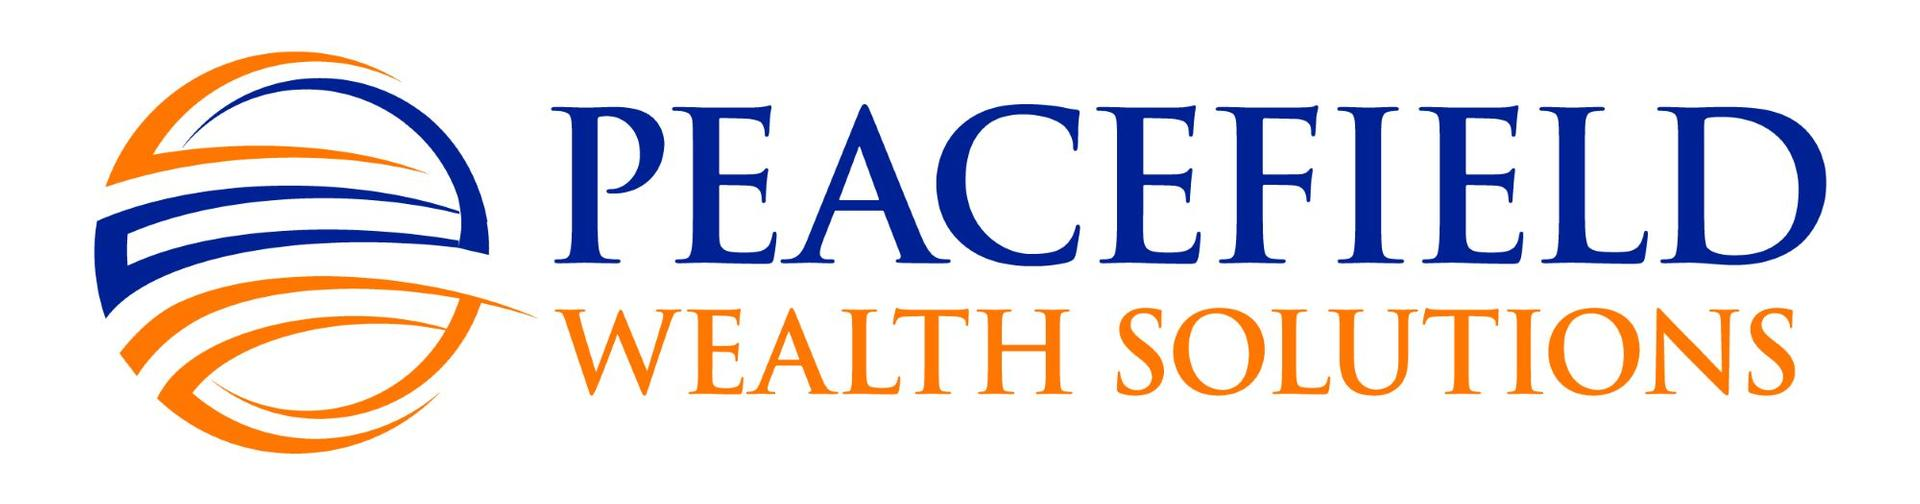 Peacefield Wealth Solutions